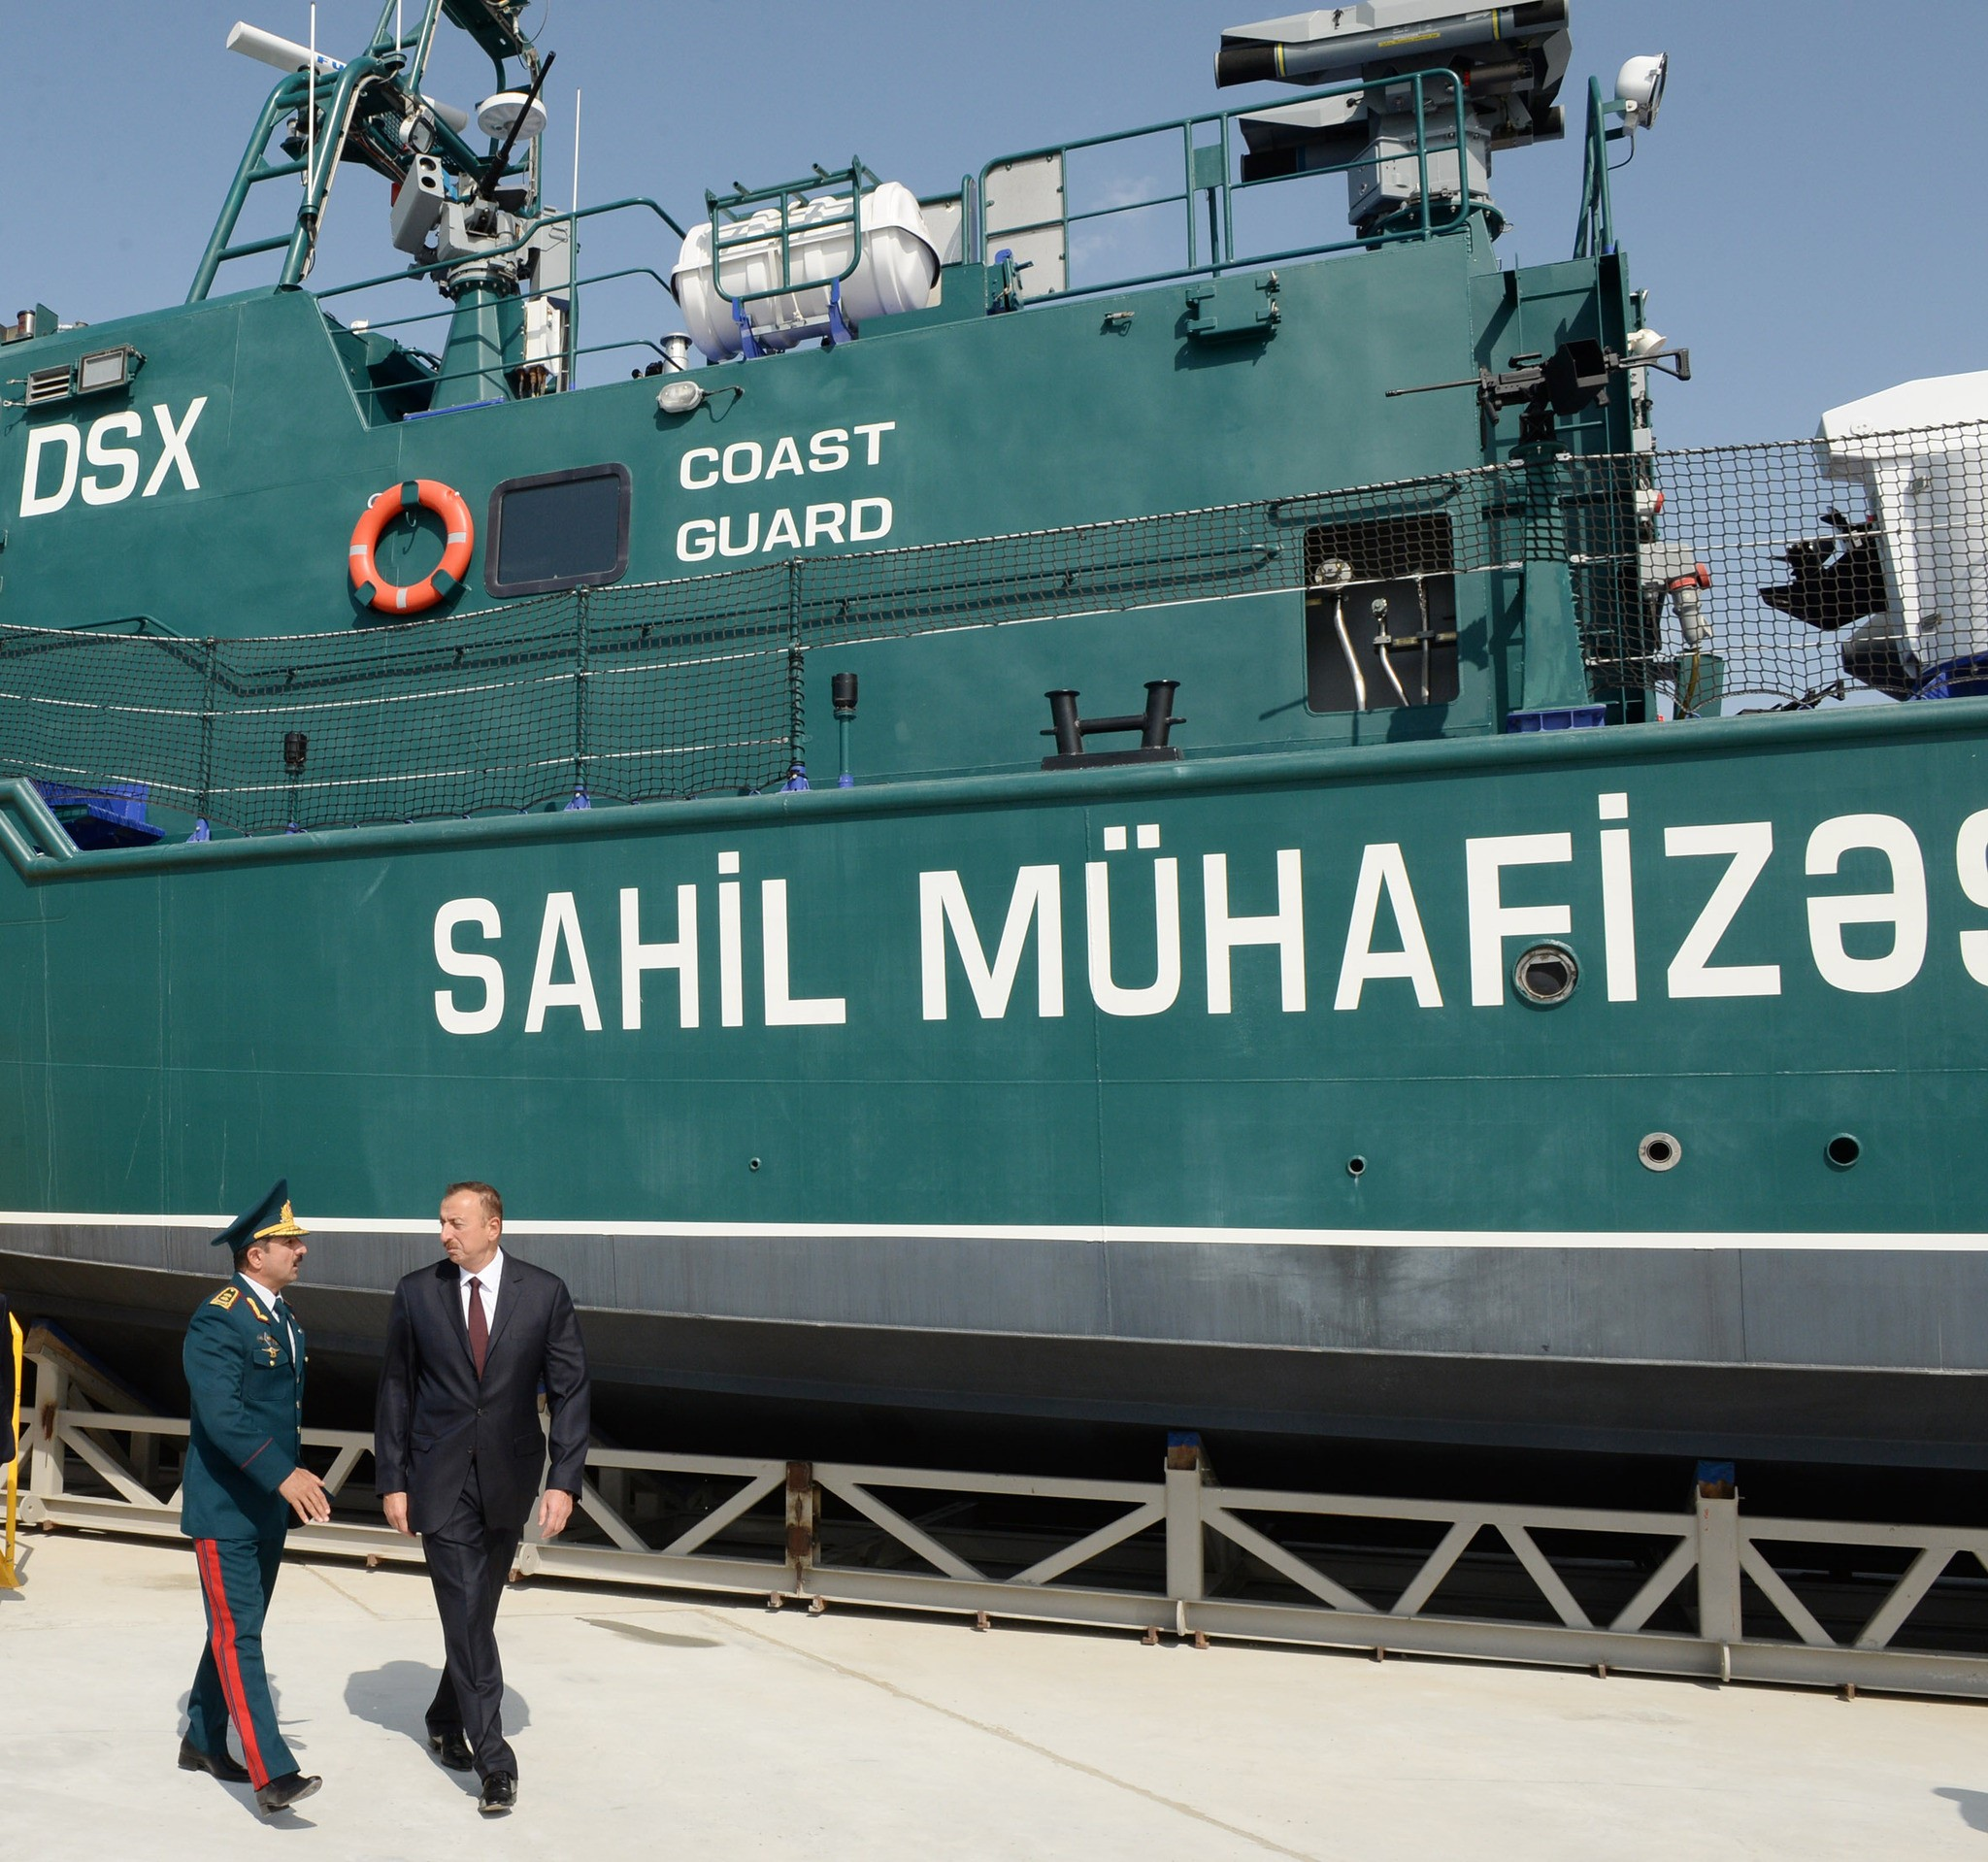 Picture President IIham Aliyev and the new revamped state boarder service coast guard ships at the ship building facility. Note ship on dry dock platform. (Spike missile top right centre).